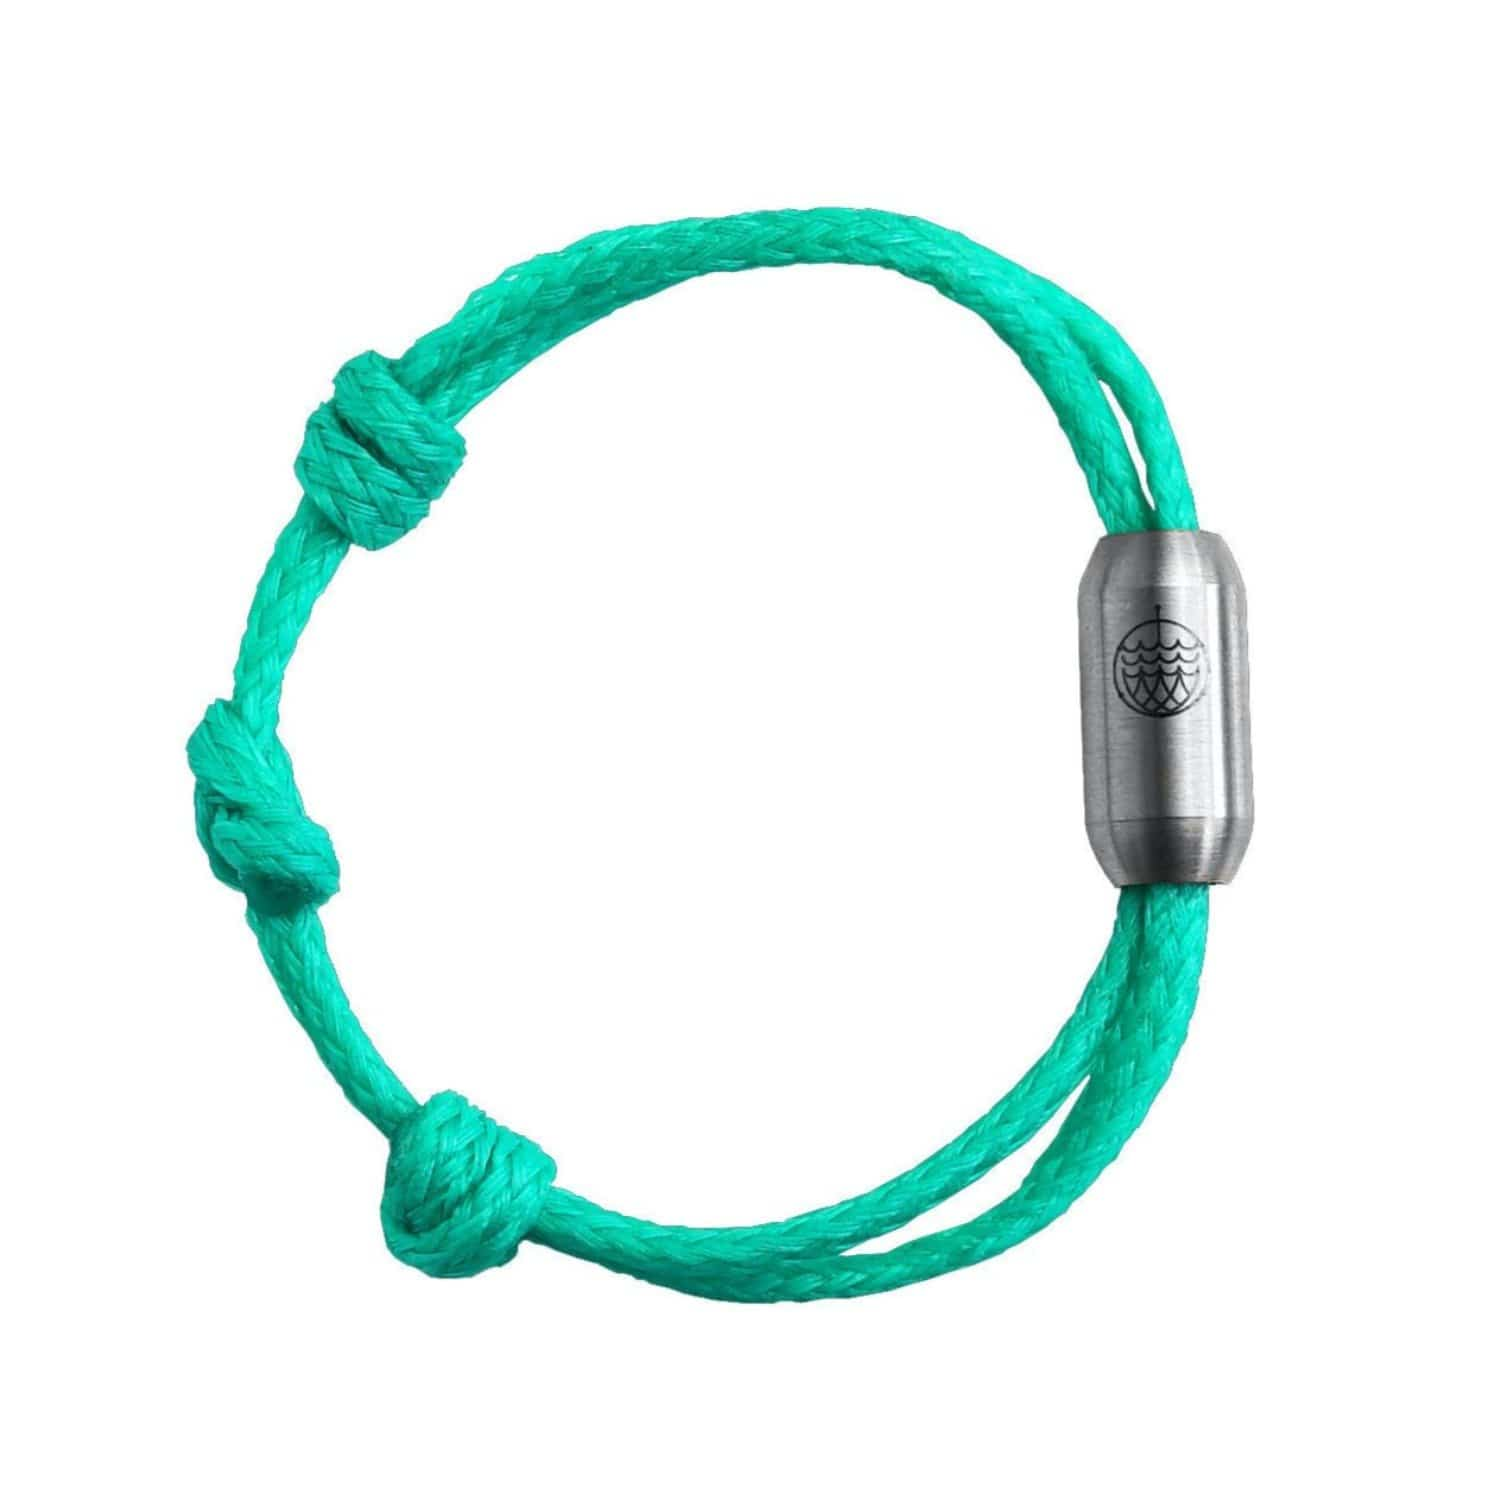 Bracenet sustainable plastic free bracelet eco friendly made of old green recycled fishing nets